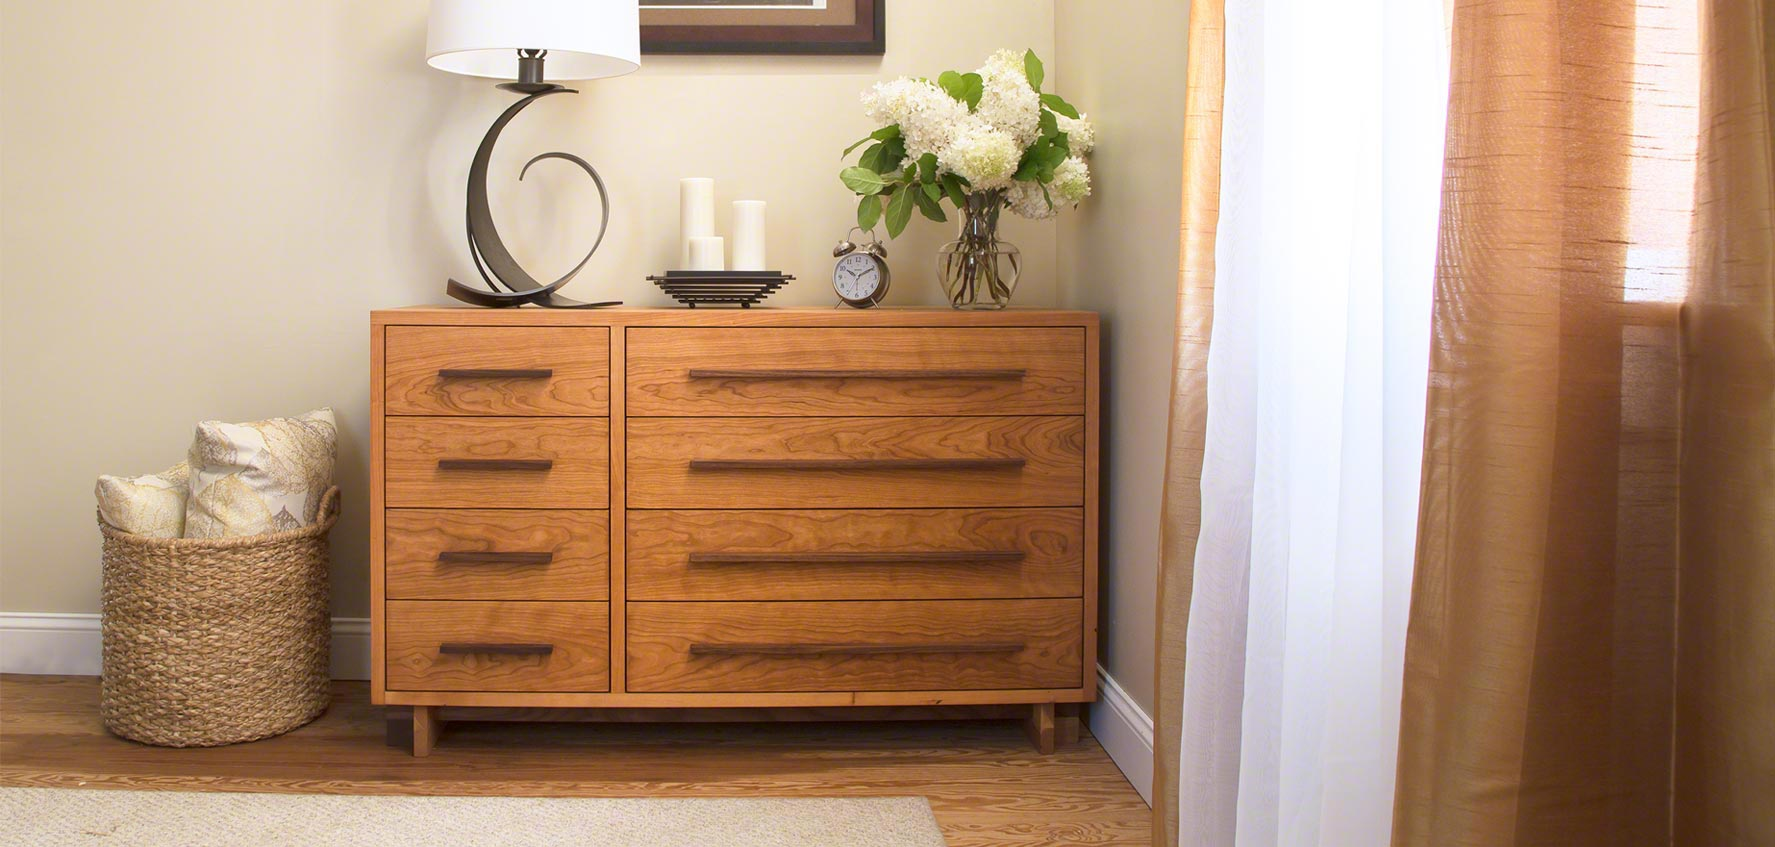 Solid Wood Furniture (Free Delivery In Newark And All Of New Jersey)